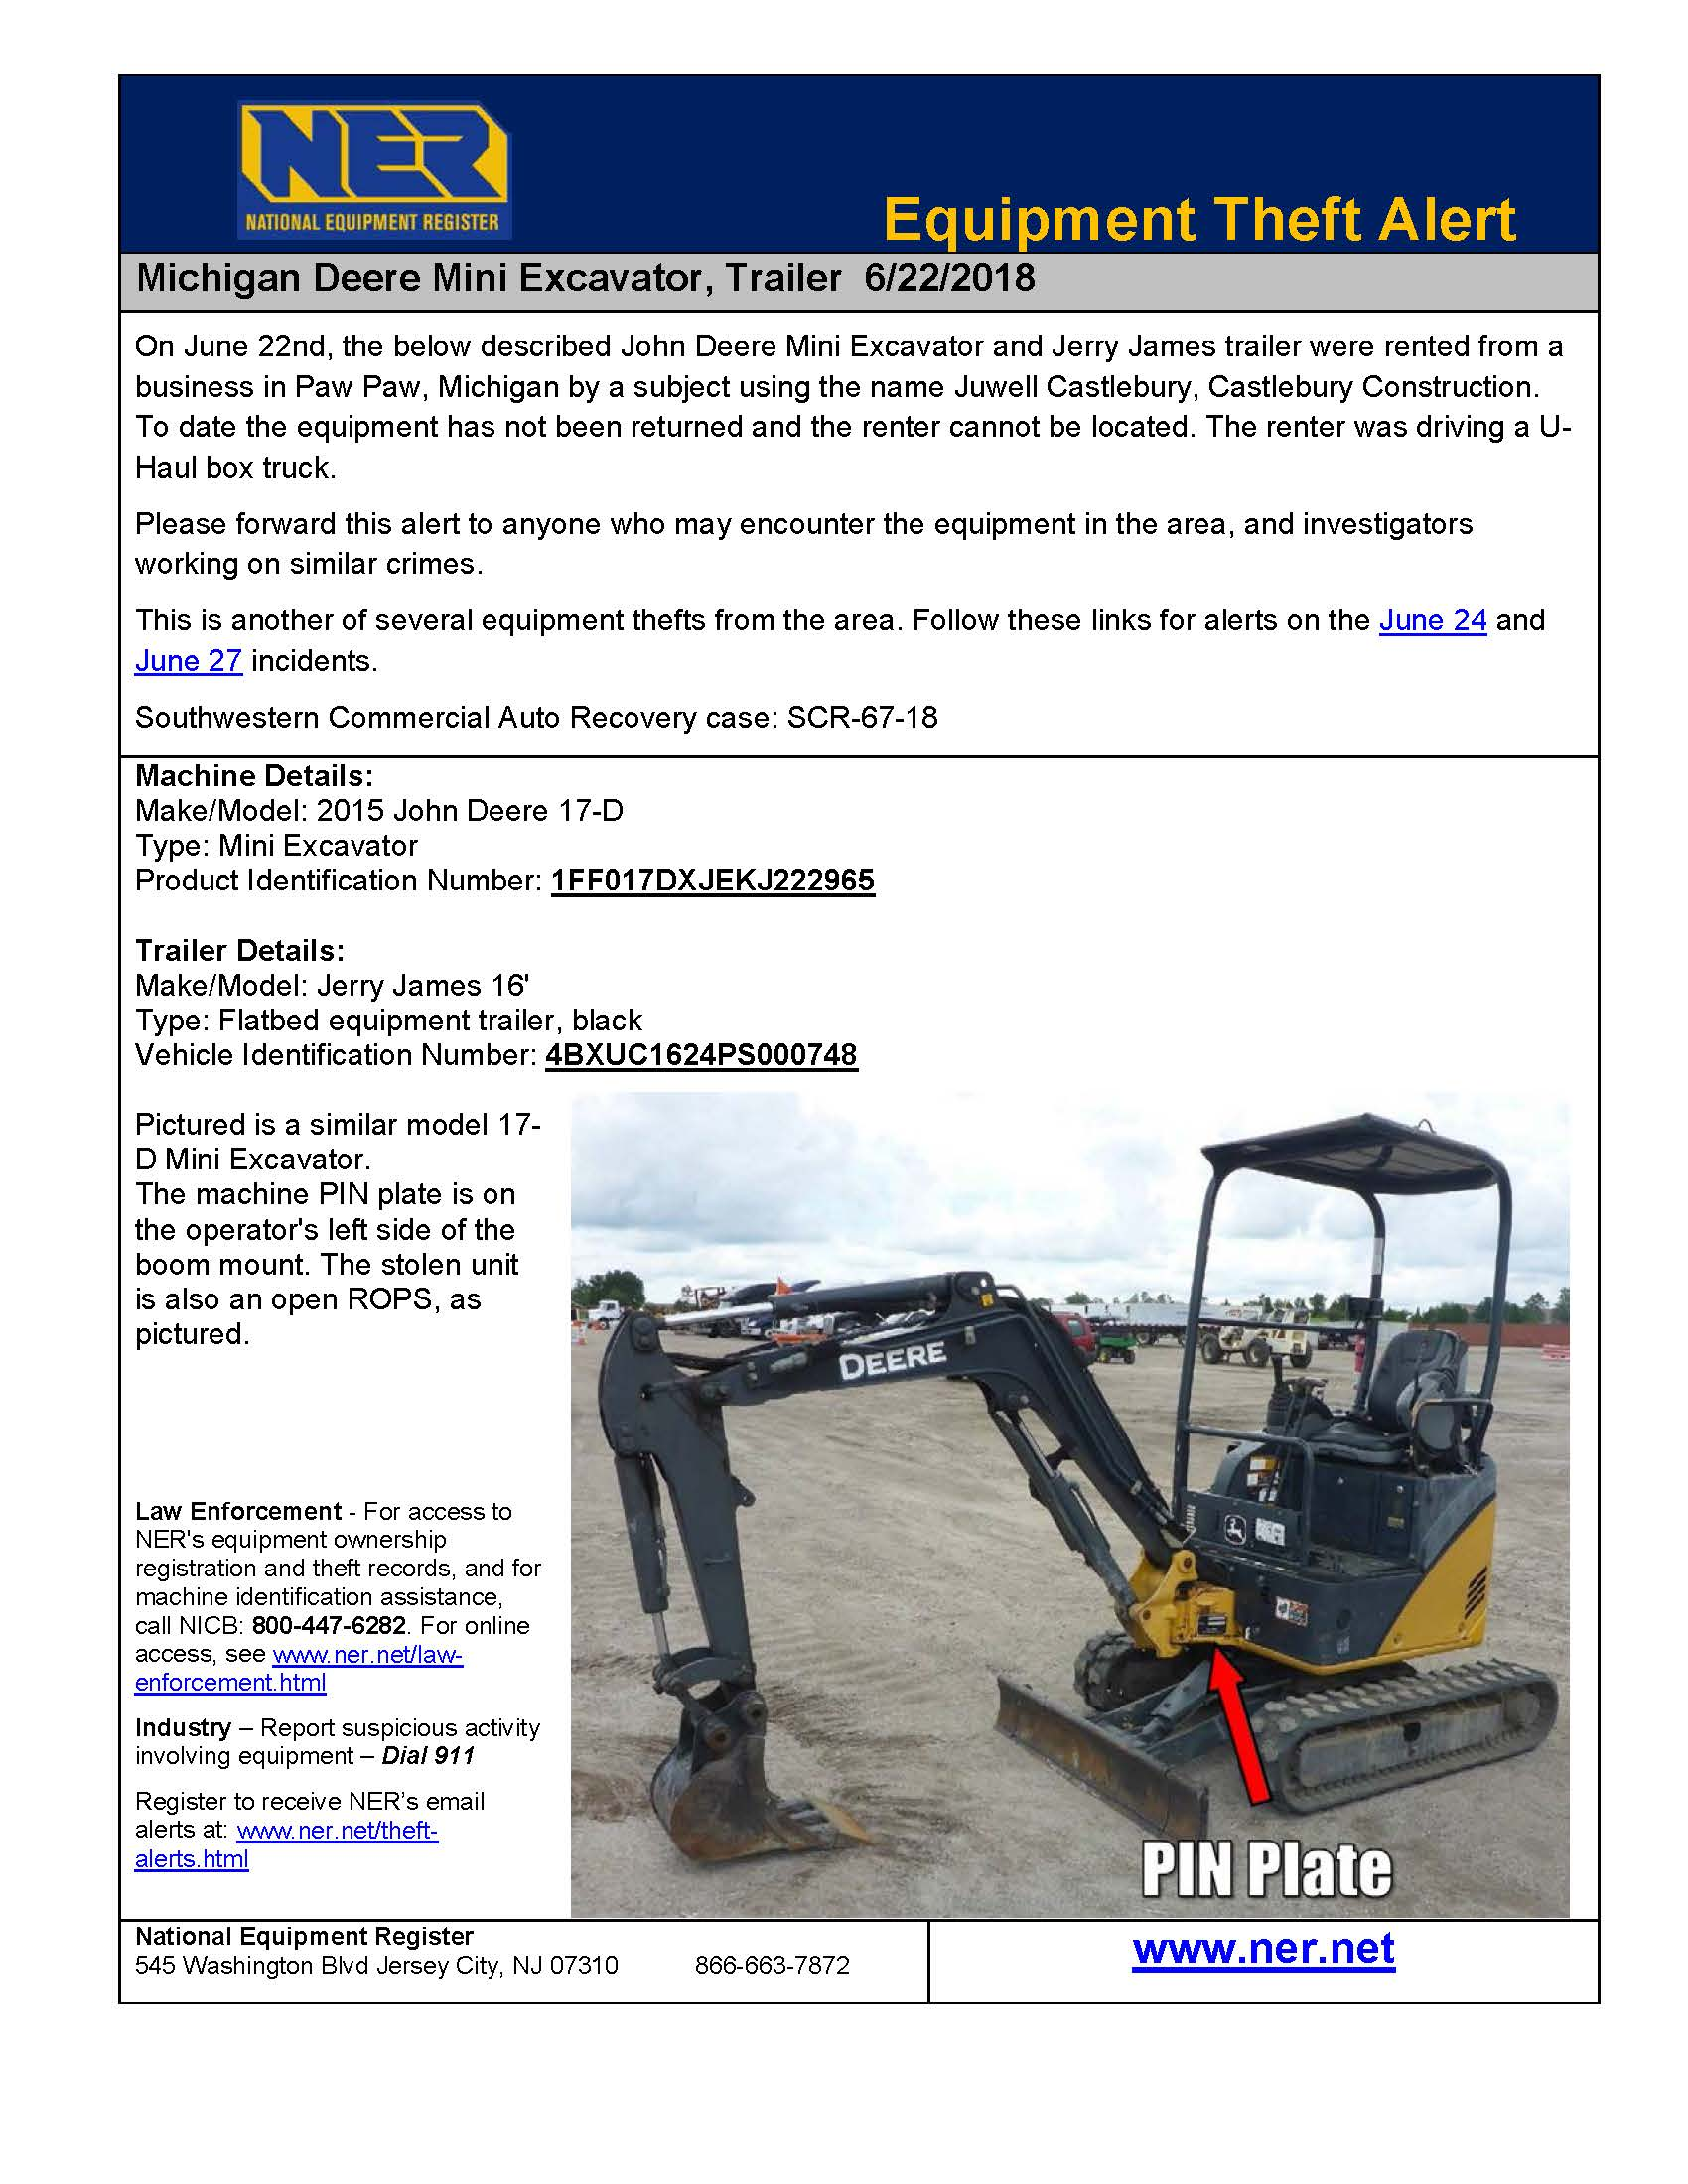 Theft Alerts | National Equipment Register (NER)